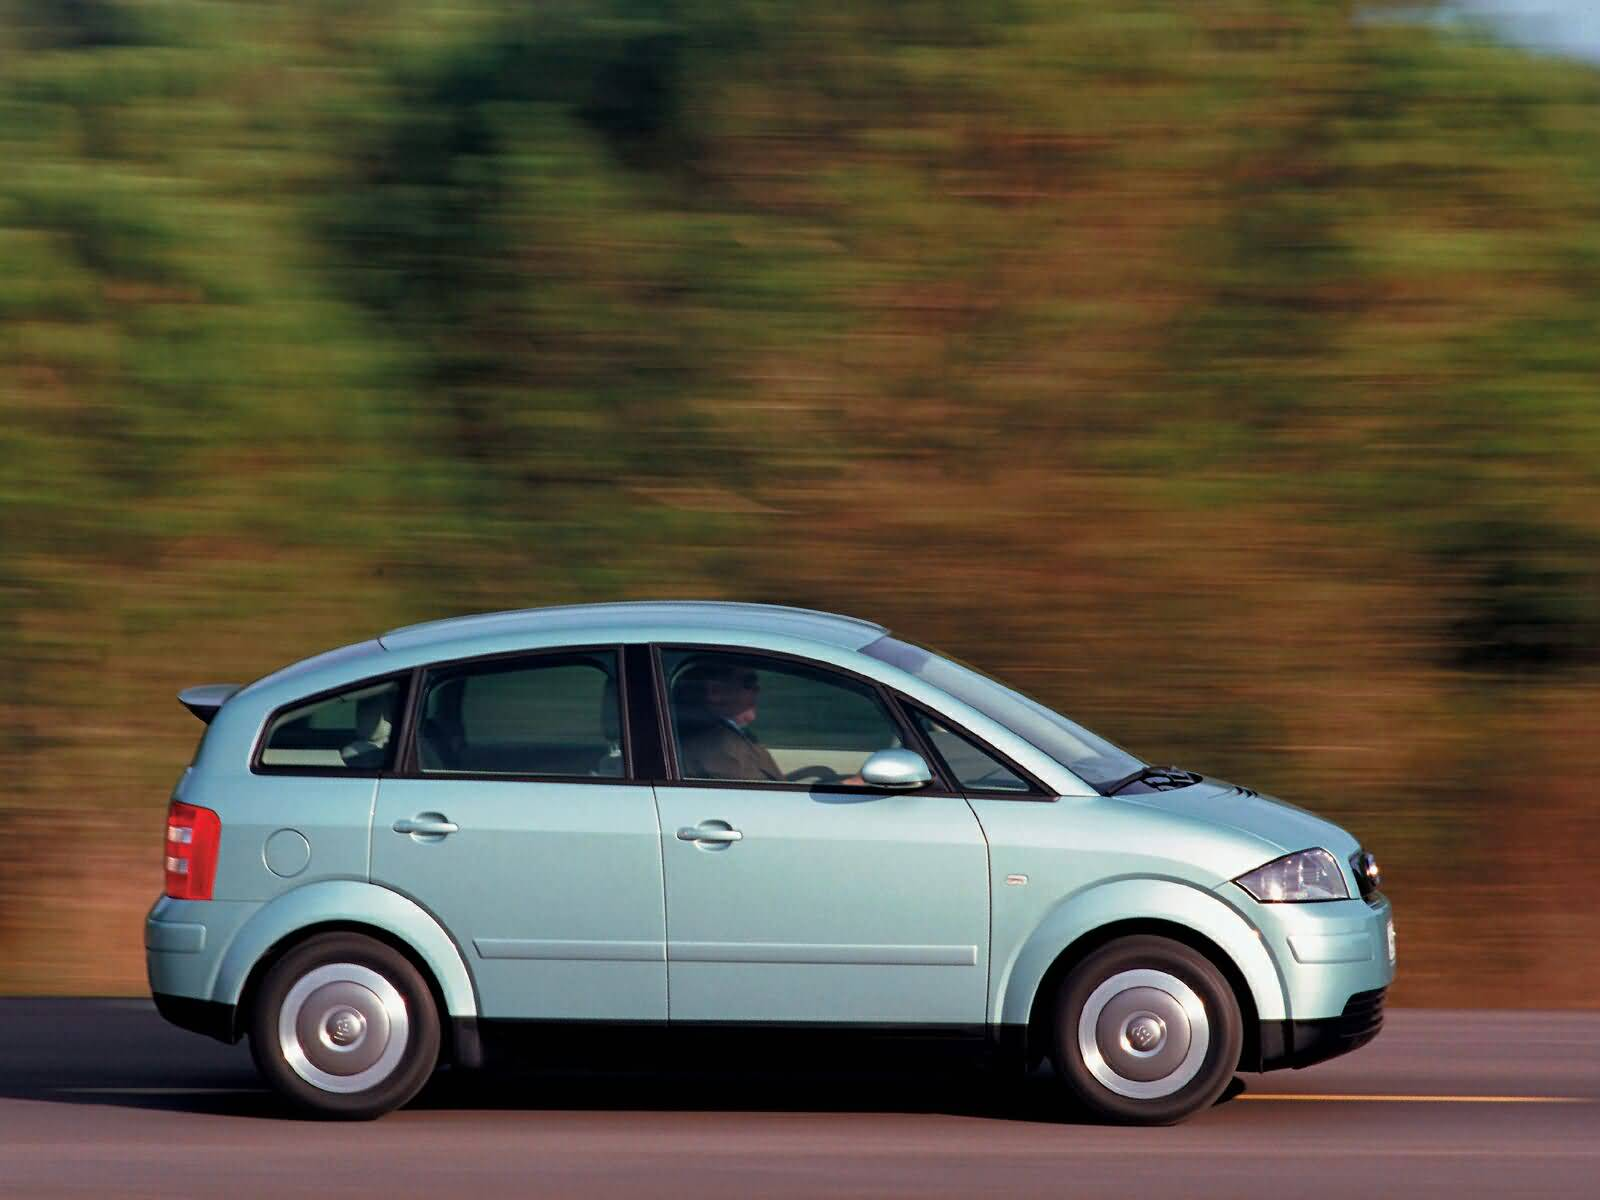 Awesome Audi A2 Car